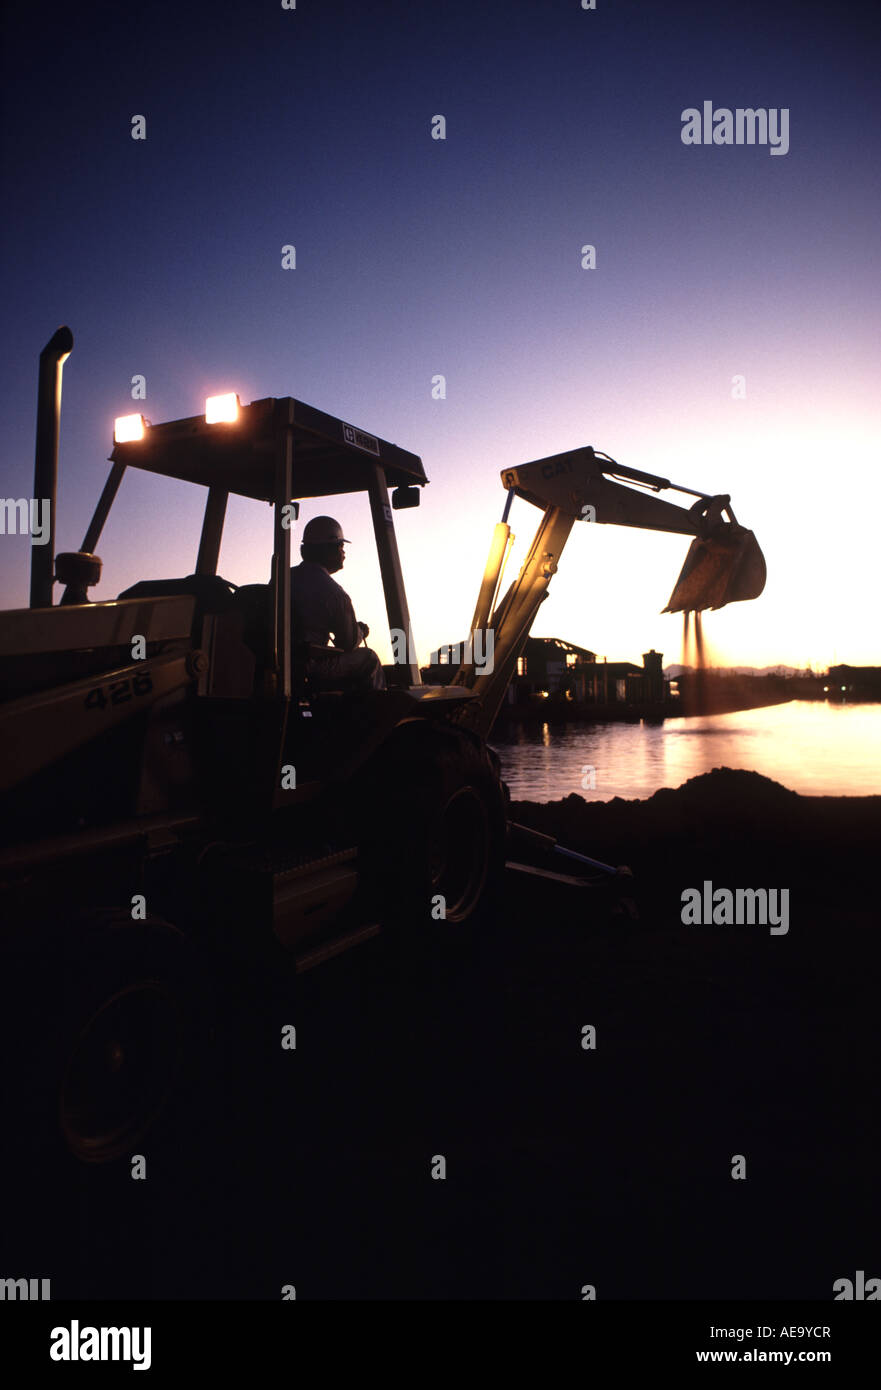 A silhouette of a man operating a backhoe at sunrise - Stock Image